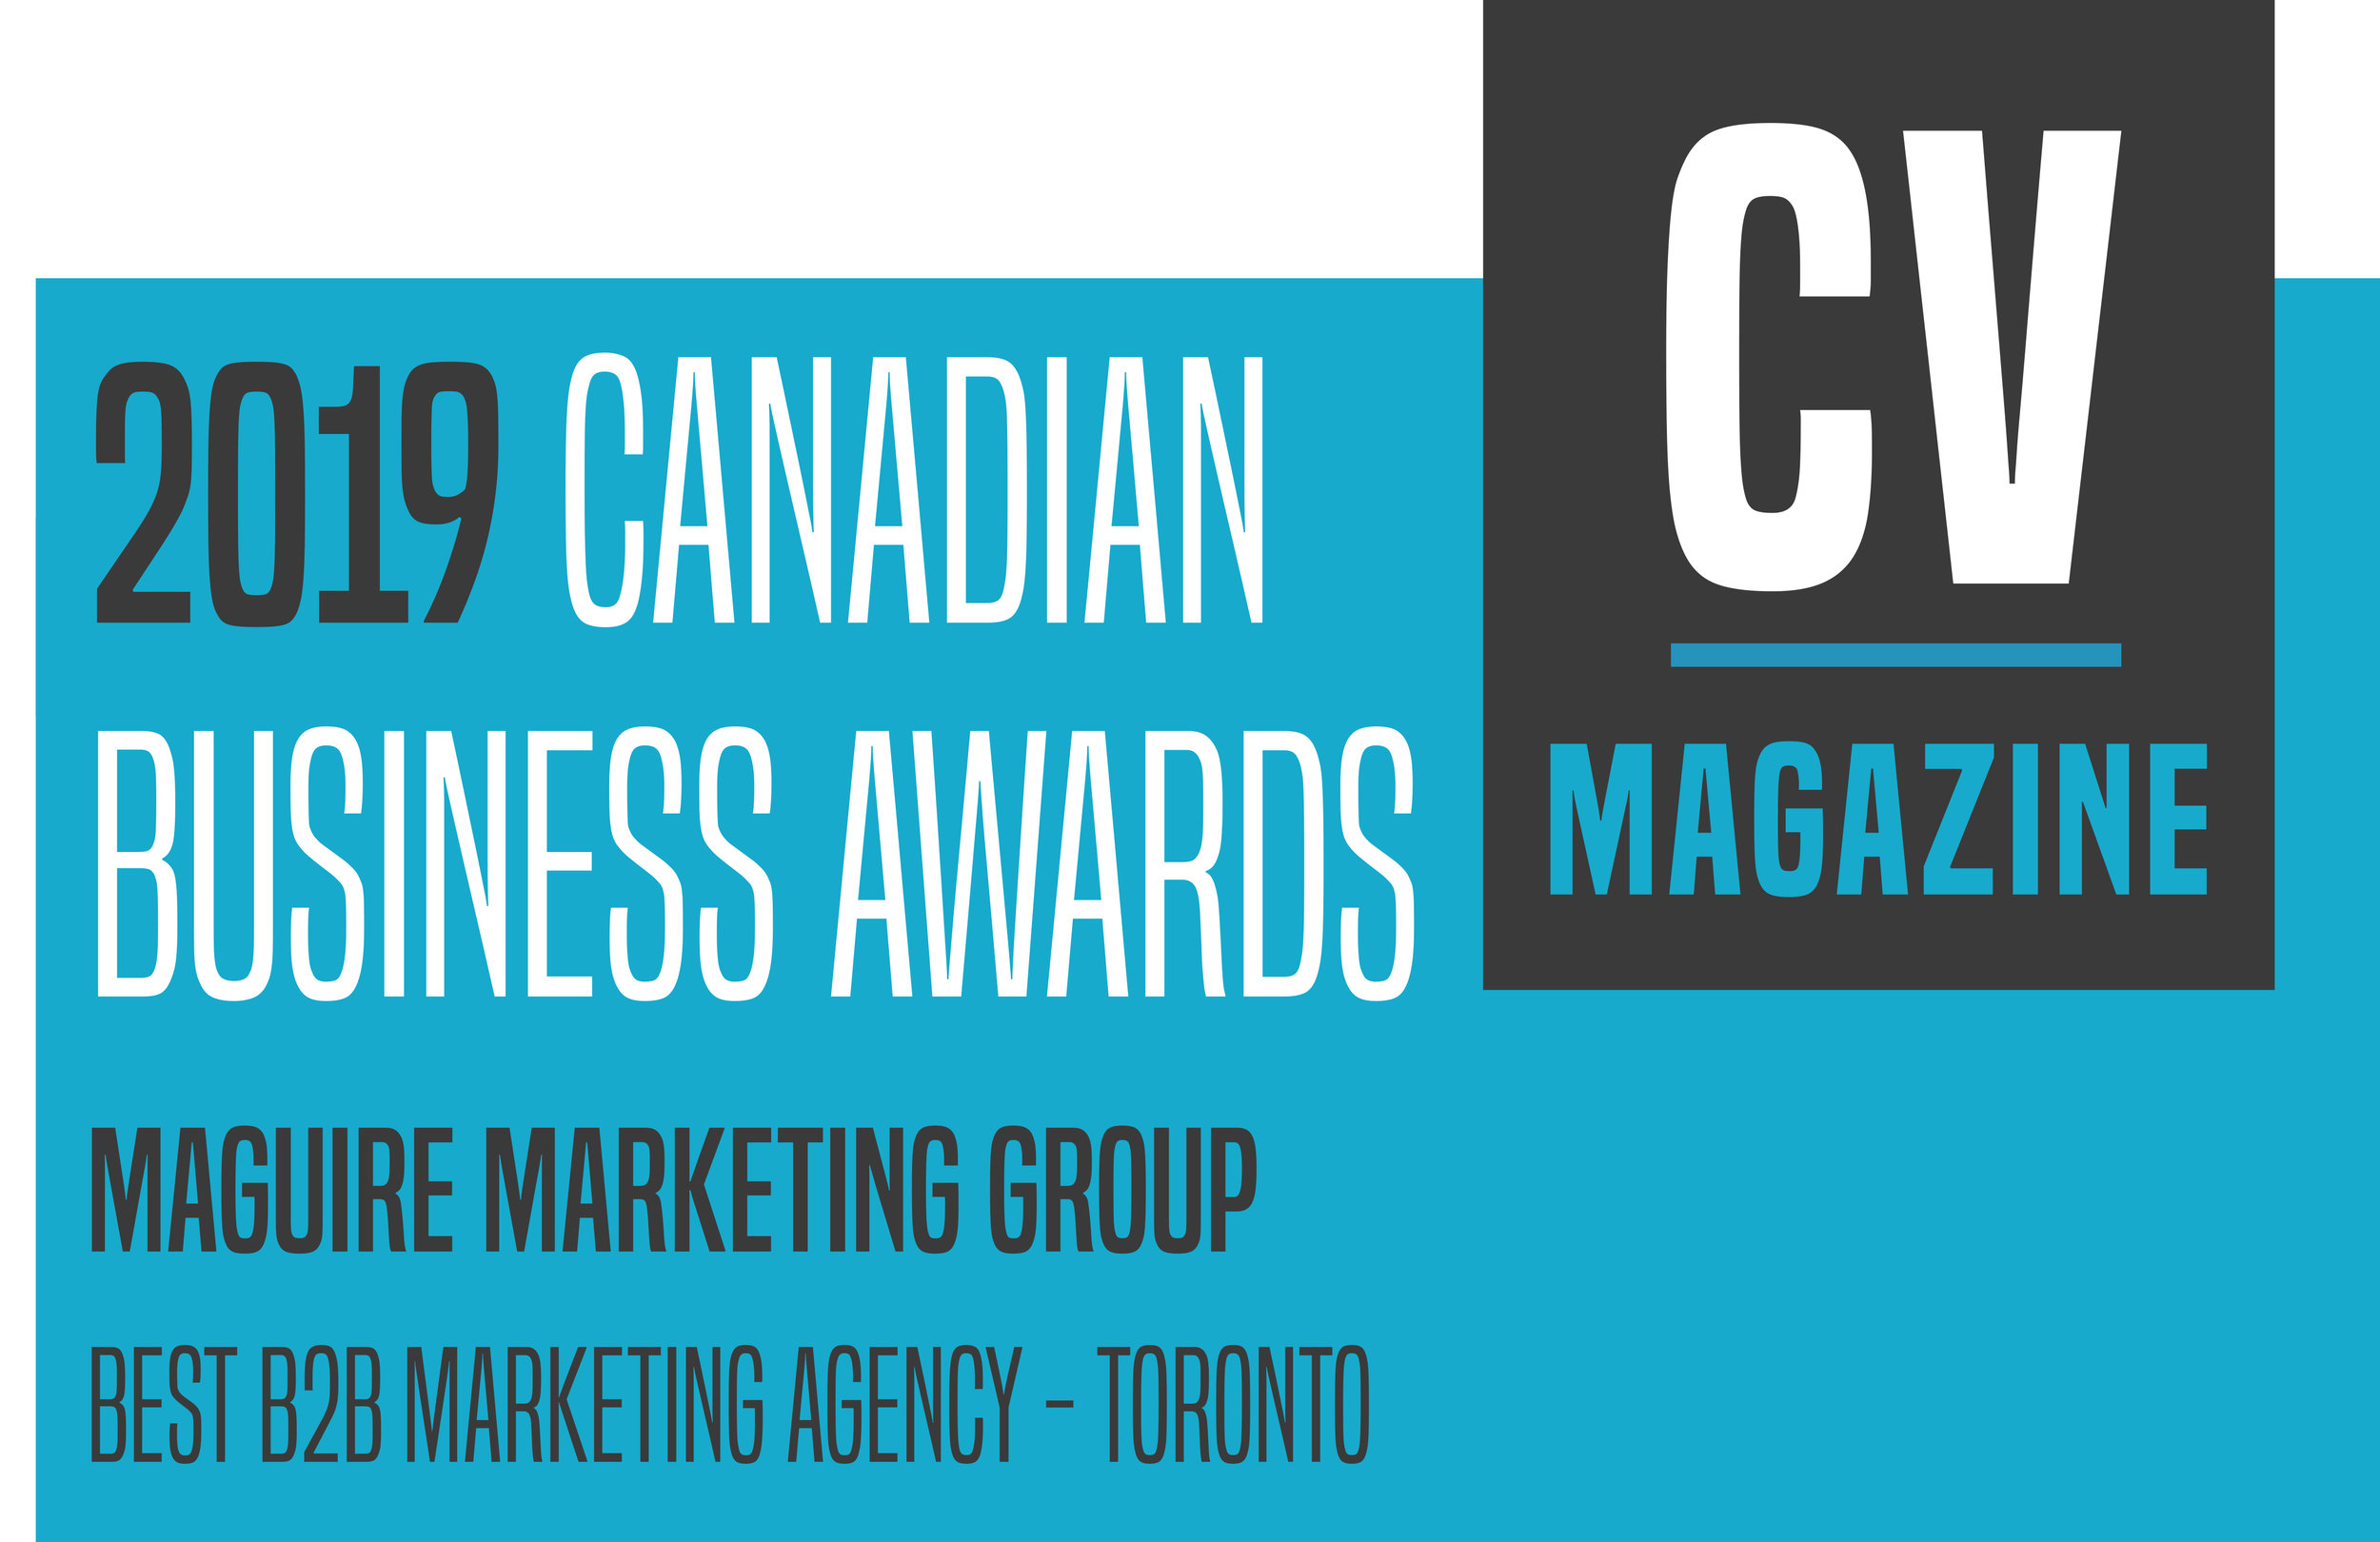 Voted one of the best agency for B2B Marketing Agency Toronto by CV Magazine